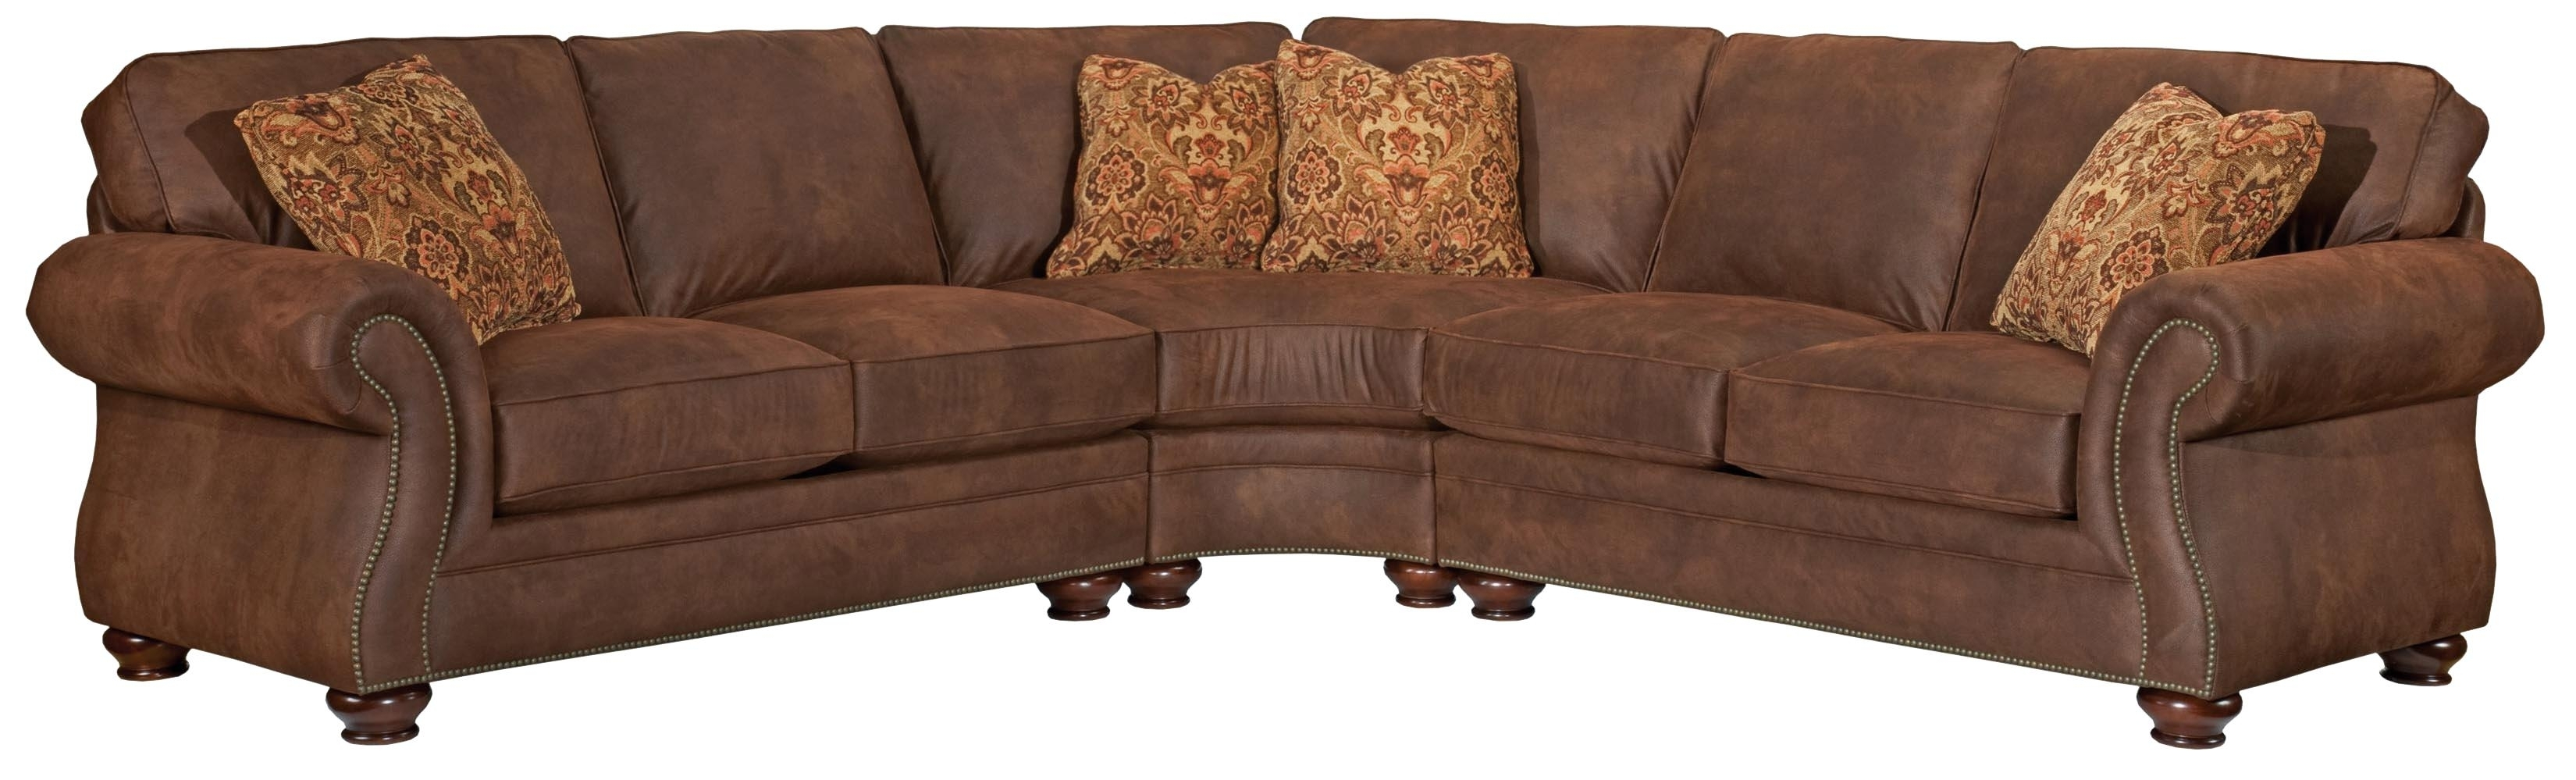 Featured Image of Sectional Sofas At Broyhill